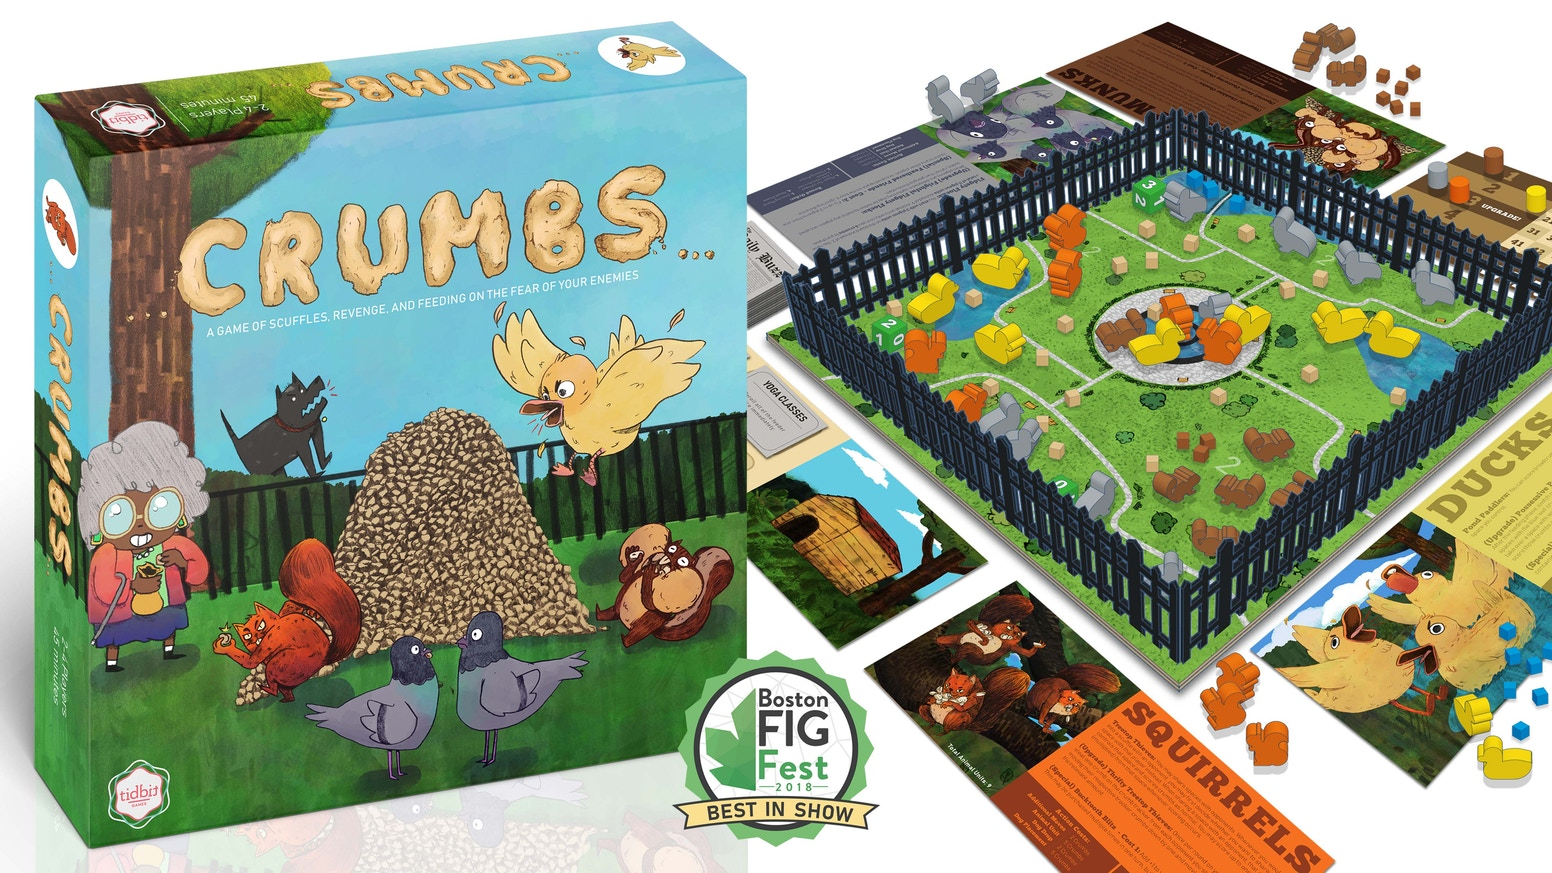 A 2-4 player area control board game where players scuffle over breadcrumbs in a city park as ducks, pigeons, squirrels or chipmunks!